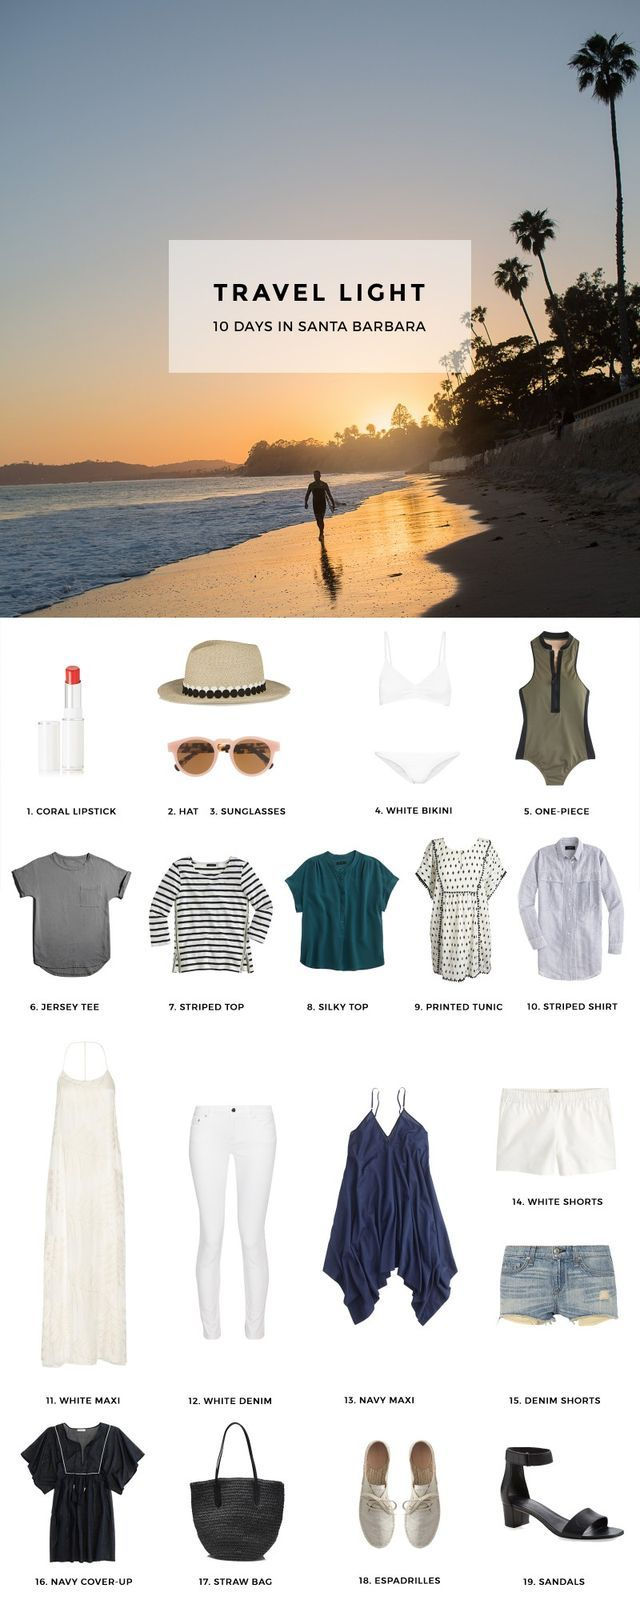 1. Coral Lipstick / 2. Trimmed Fedora / 3. Pink Sunglasses / 4. White Bikini / 5. One-Piece Swimsuit / 6. Jersey Tee / 7. Striped Top / 8. Silky Top / 9. Printed Pom Pom Tunic / 10. Striped Shirt / 11